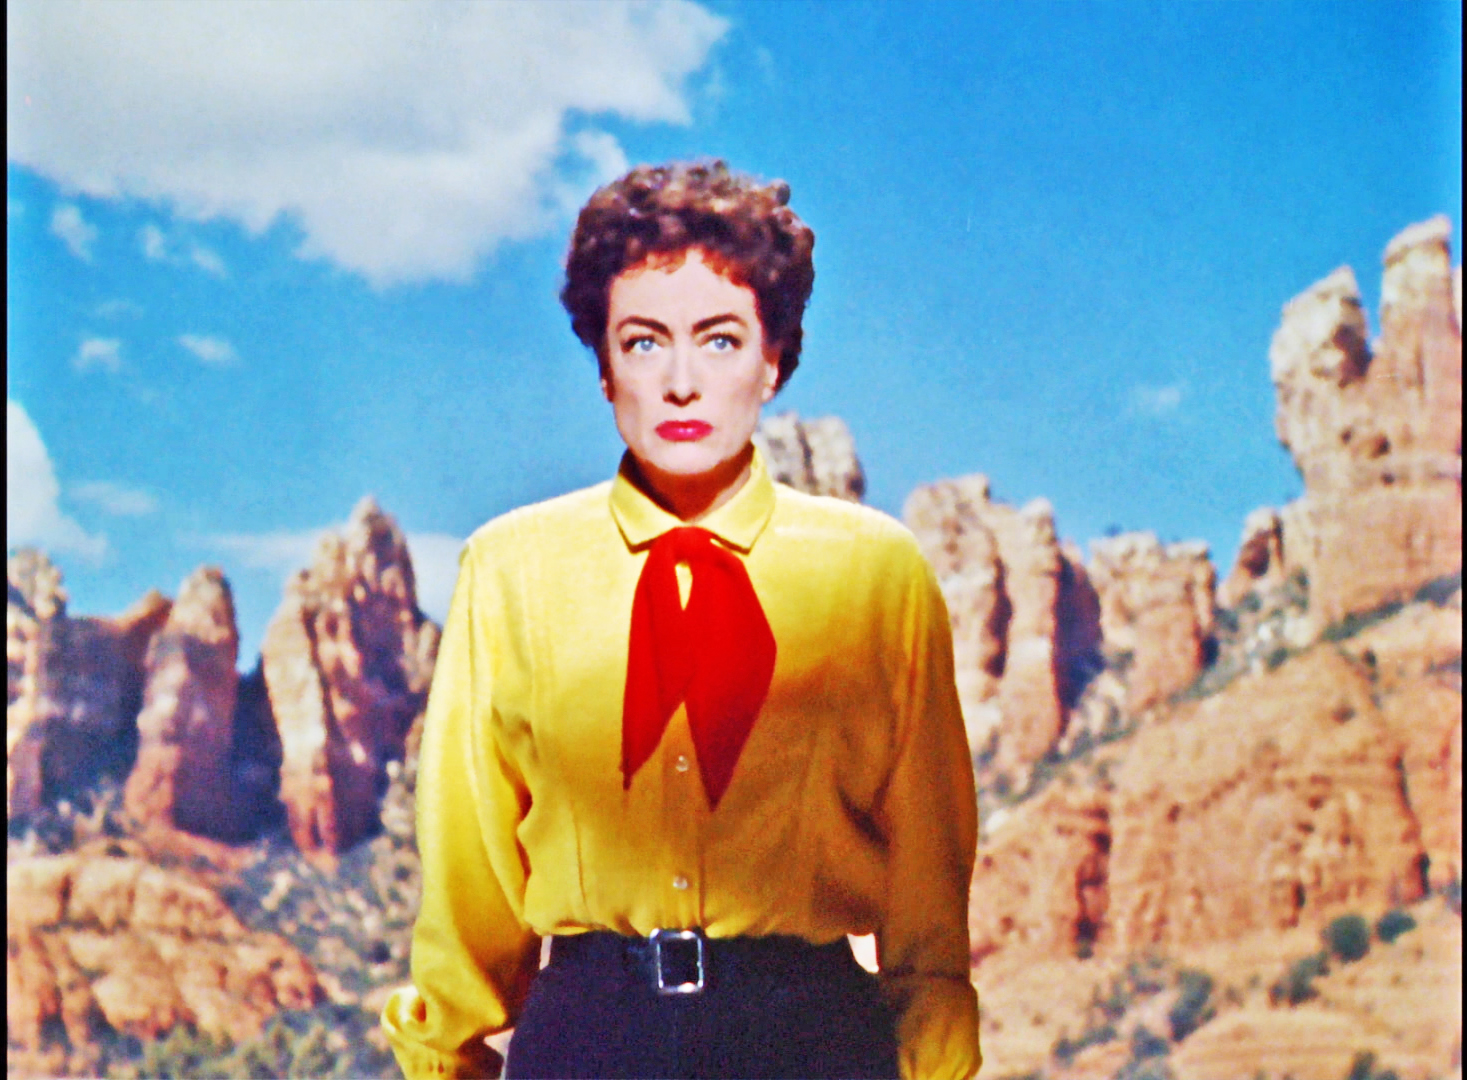 08/05/2008· nicholas ray 's johnny guitar (1954) is surely one of the most blatant psychosexual melodramas ever to disguise itself in that most commodious of genres, the western. ira joel haber-cinemagebooks: Johnny Guitar 1954.